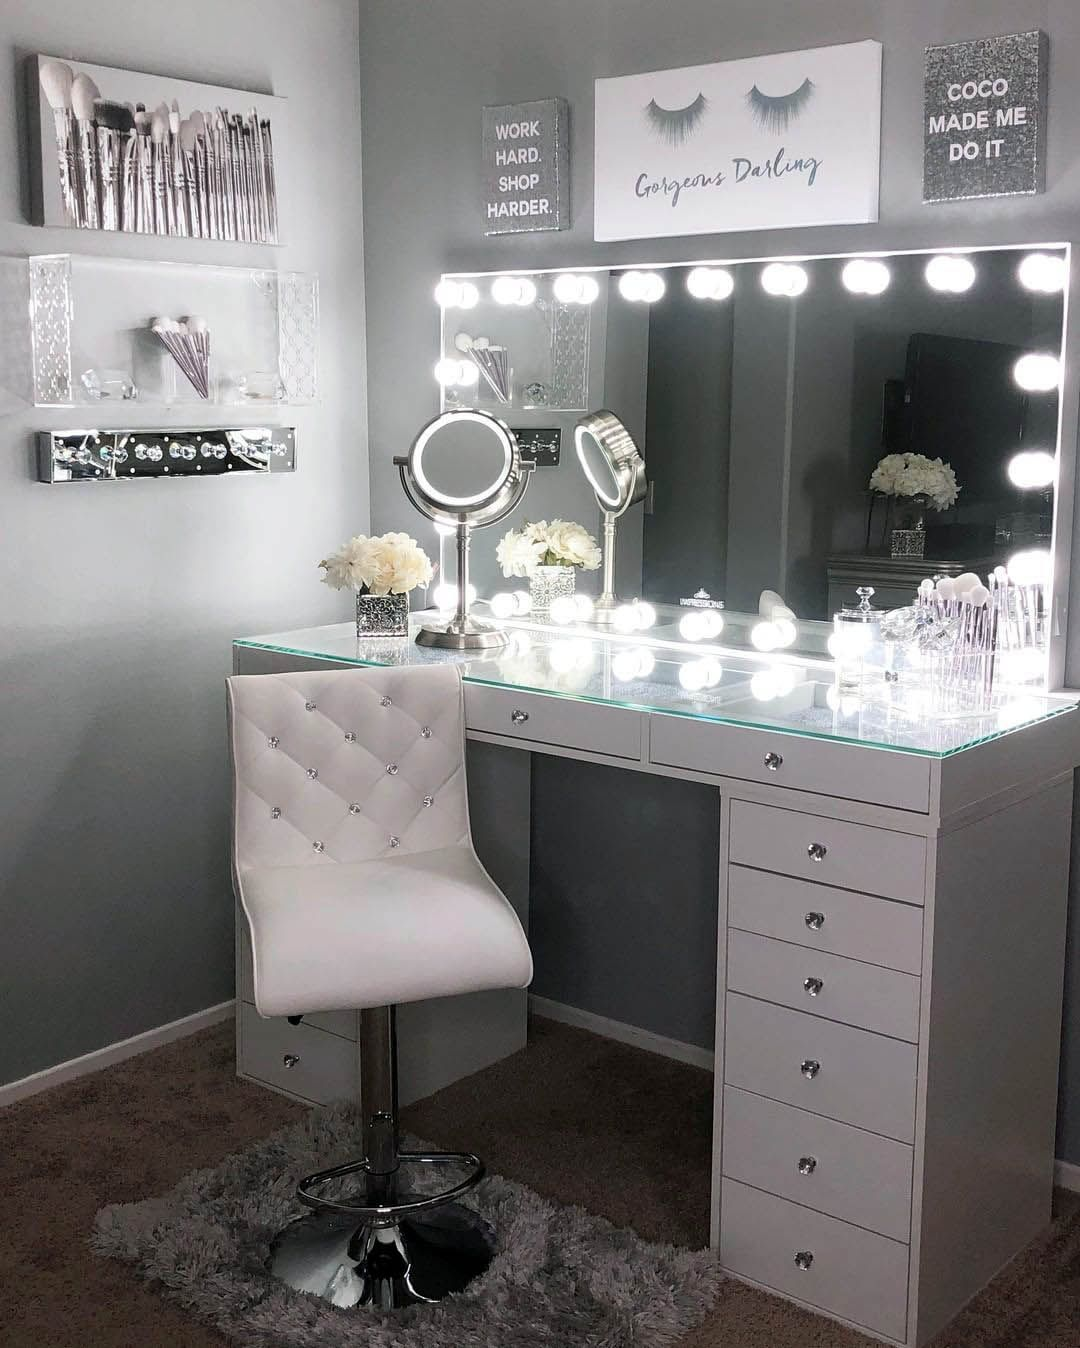 Pin by Melissa on office ideas  Stylish bedroom, Makeup room